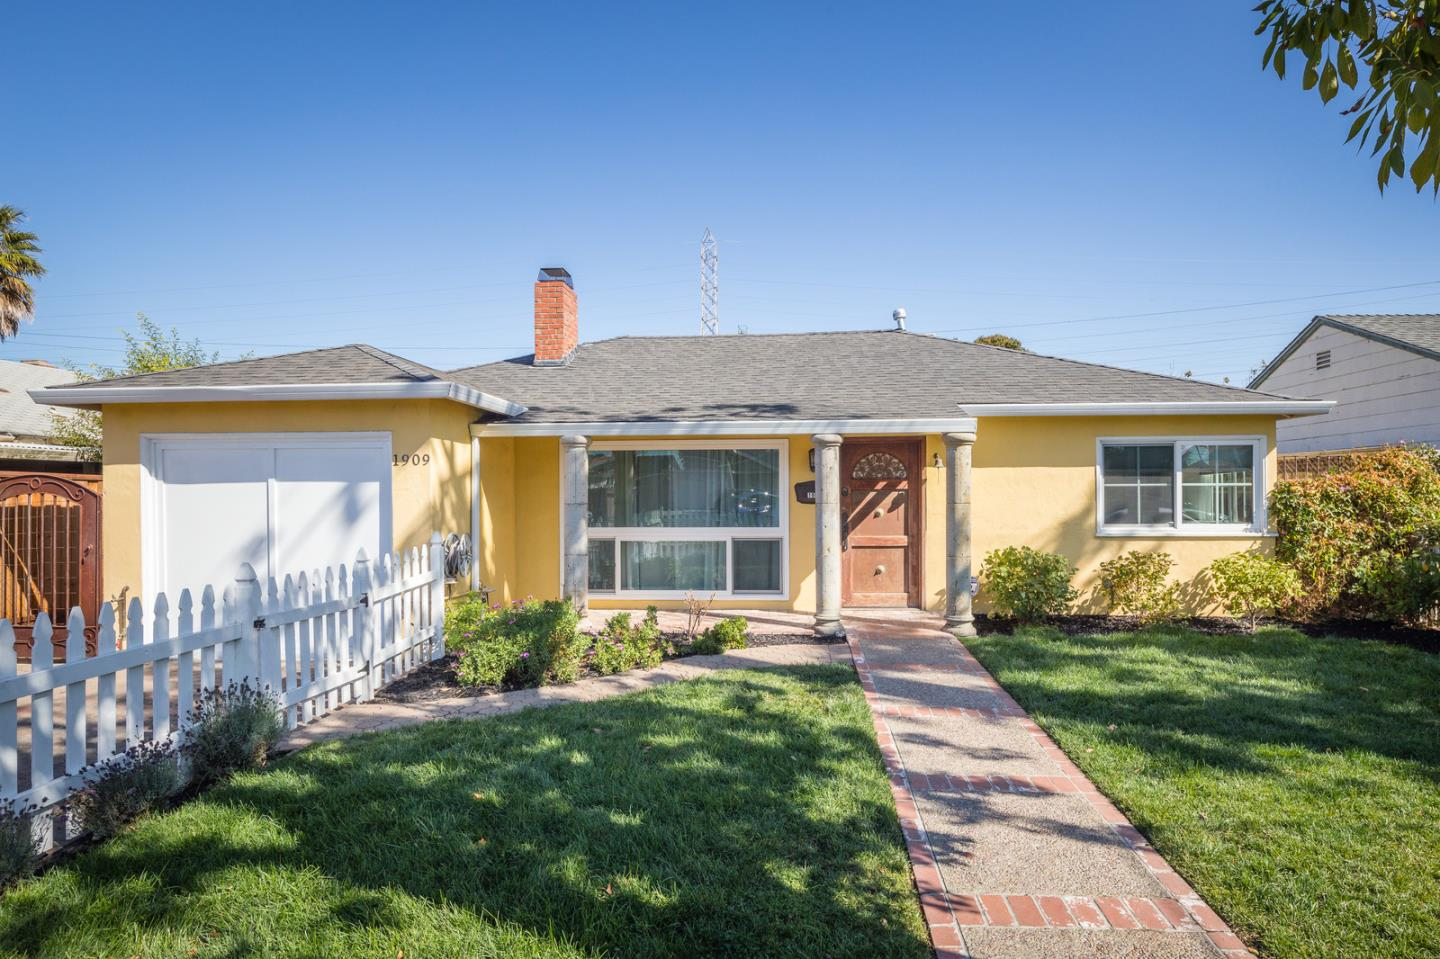 Photo for 1909 Shoreview AVE, SAN MATEO, CA 94401 (MLS # ML81771256)